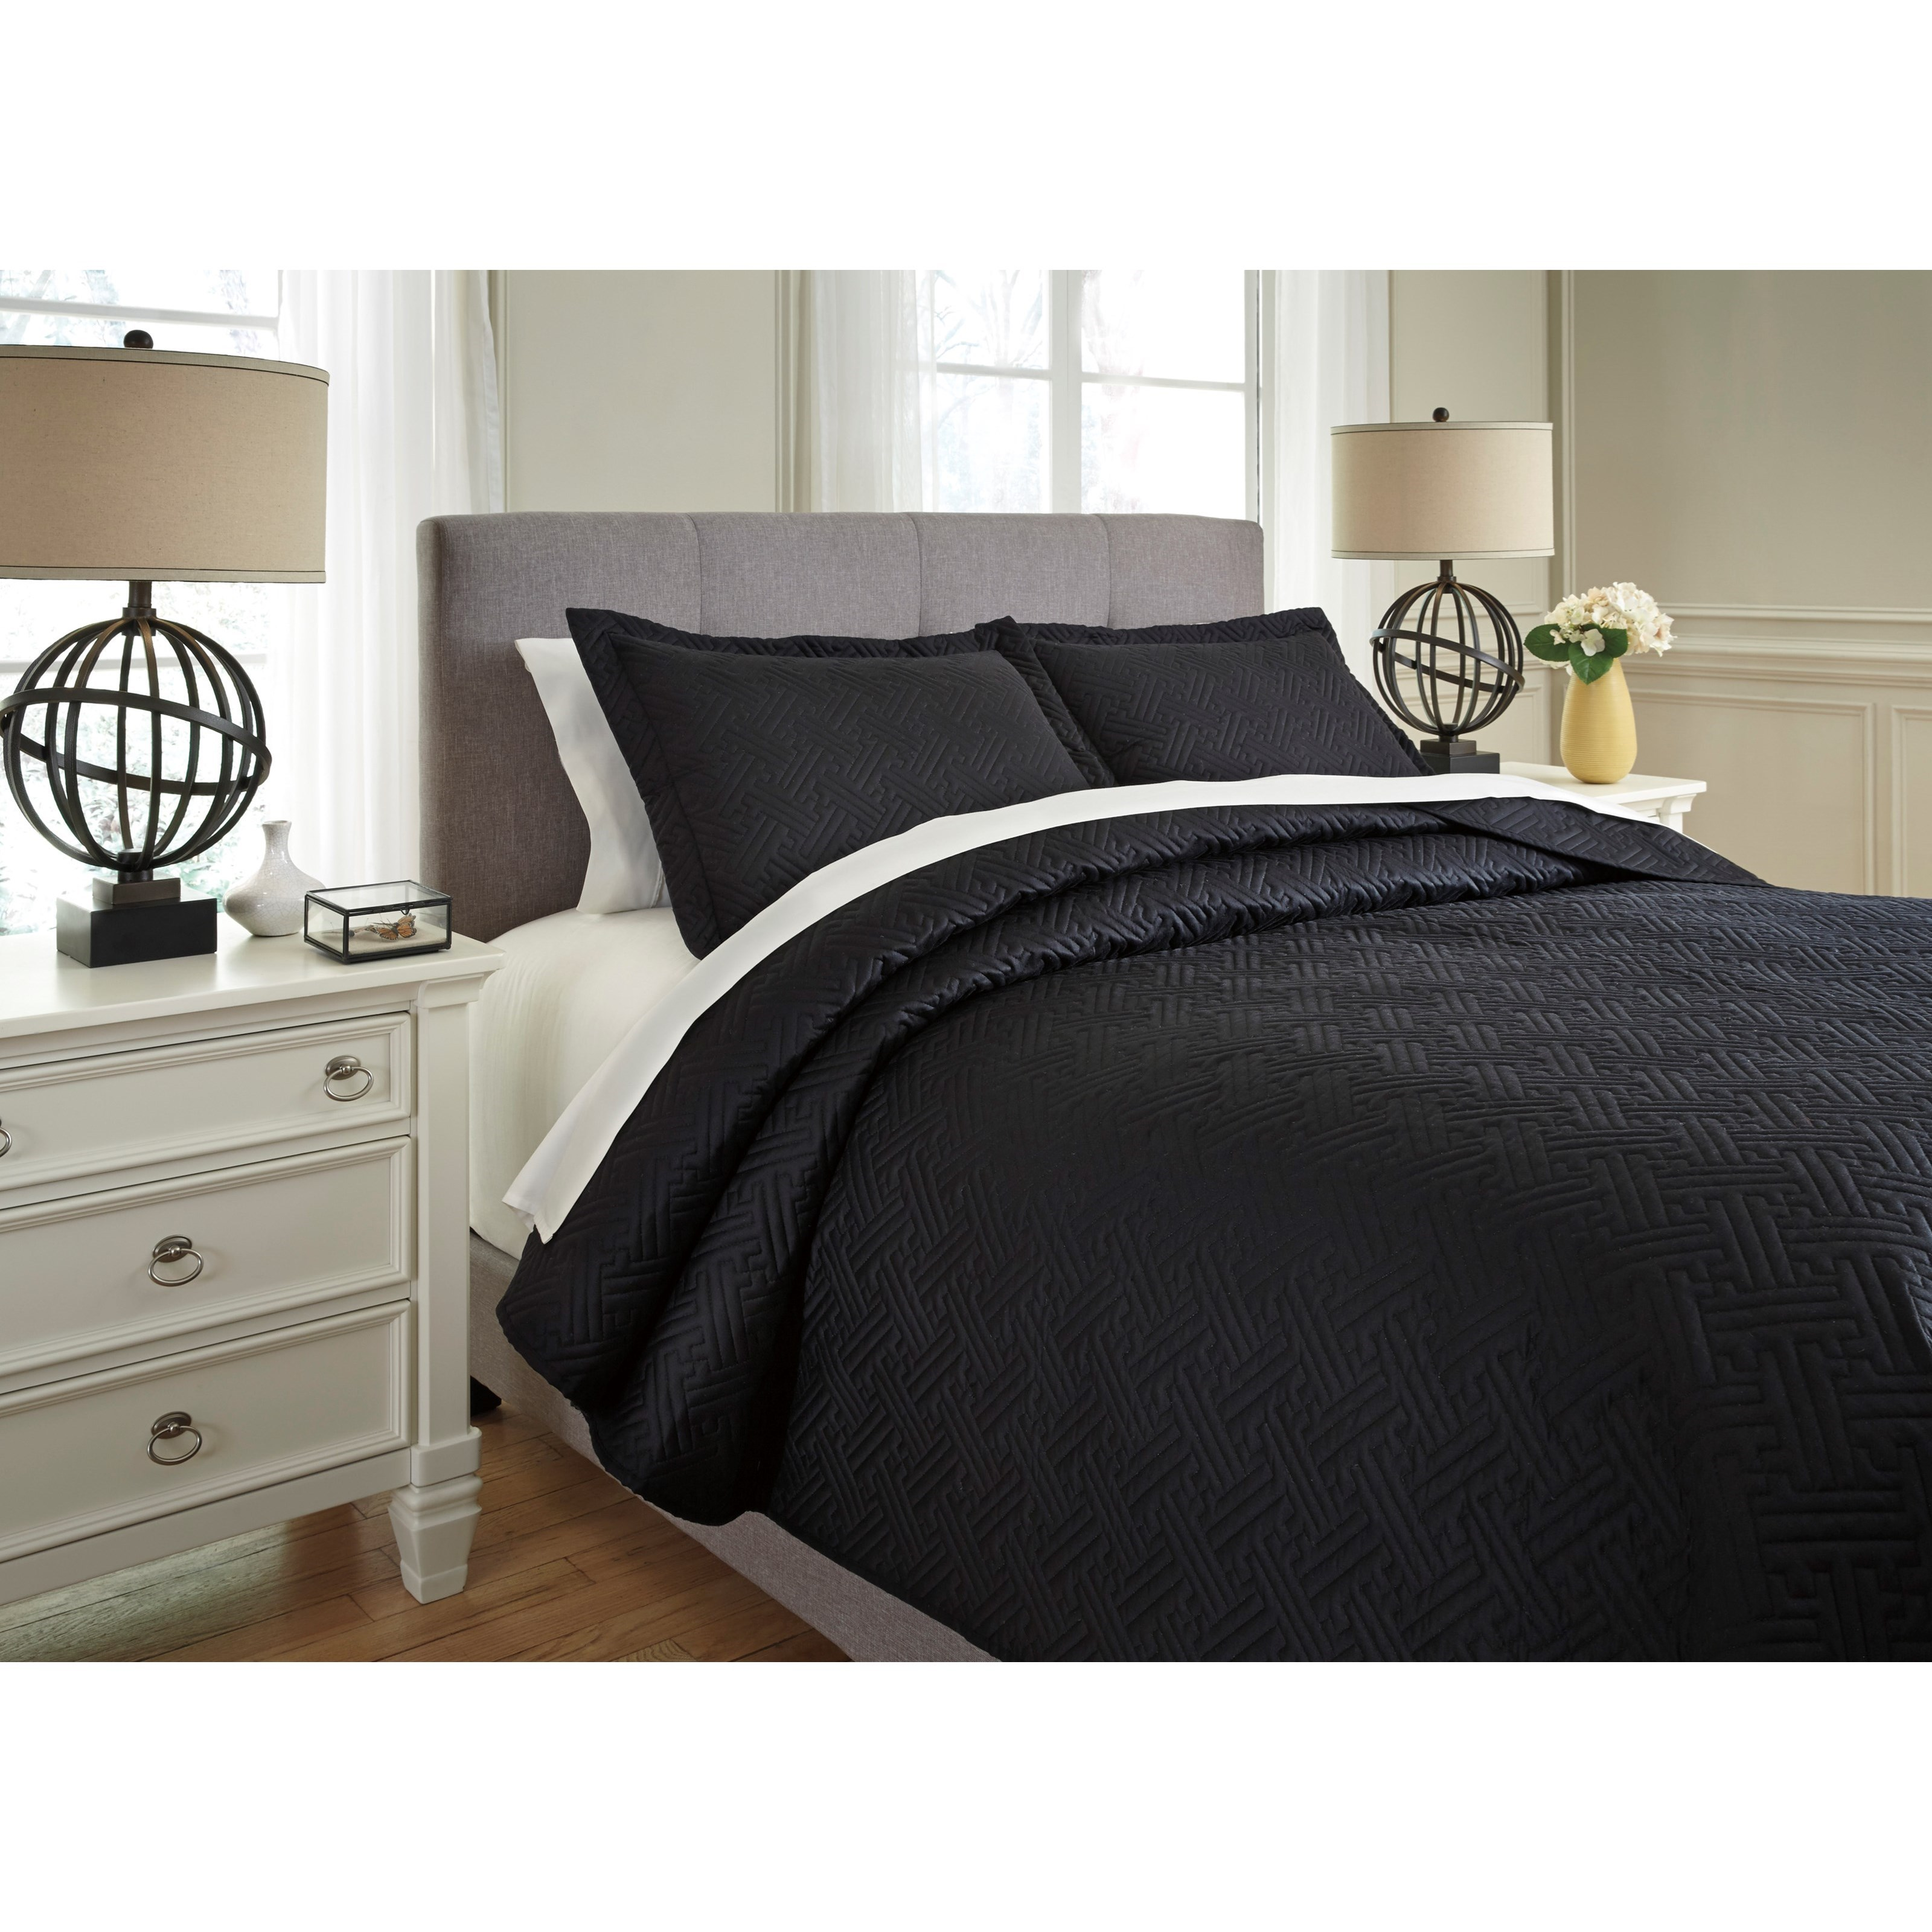 Signature design by ashley bedding sets q739013q queen for Bedding sets for black furniture